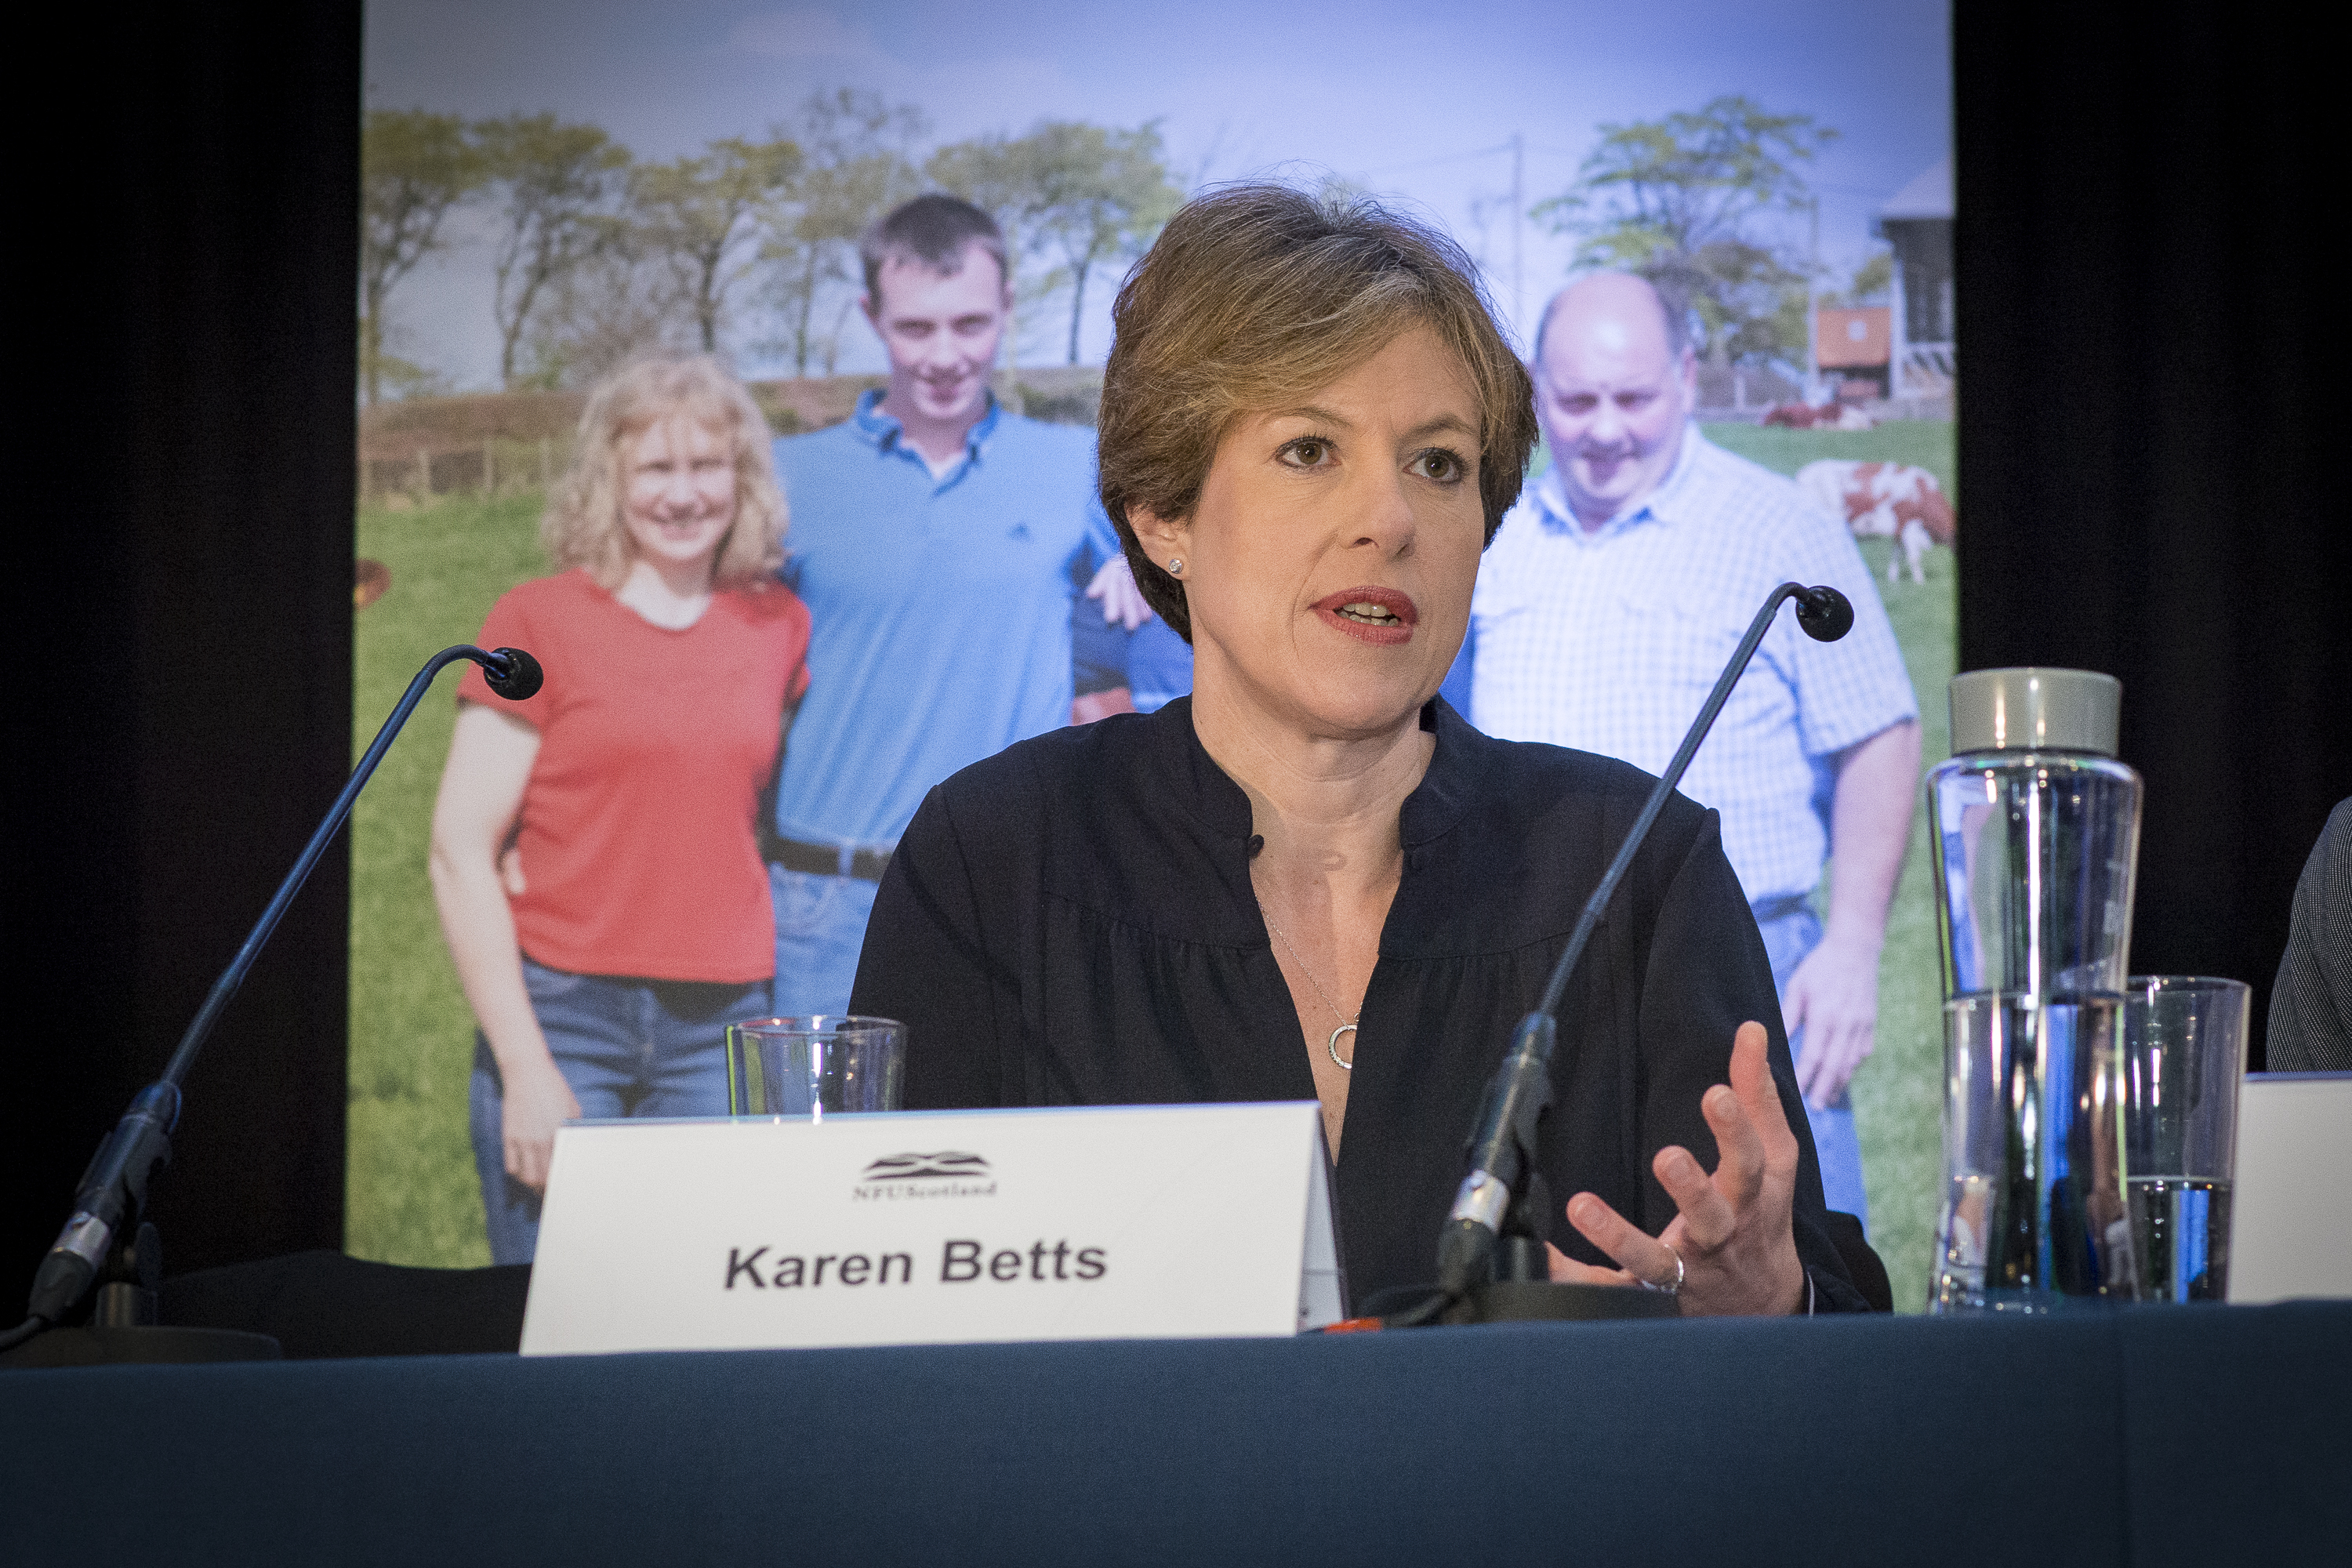 Karen Betts, who joined the discussion panel at the NFUS annual conference